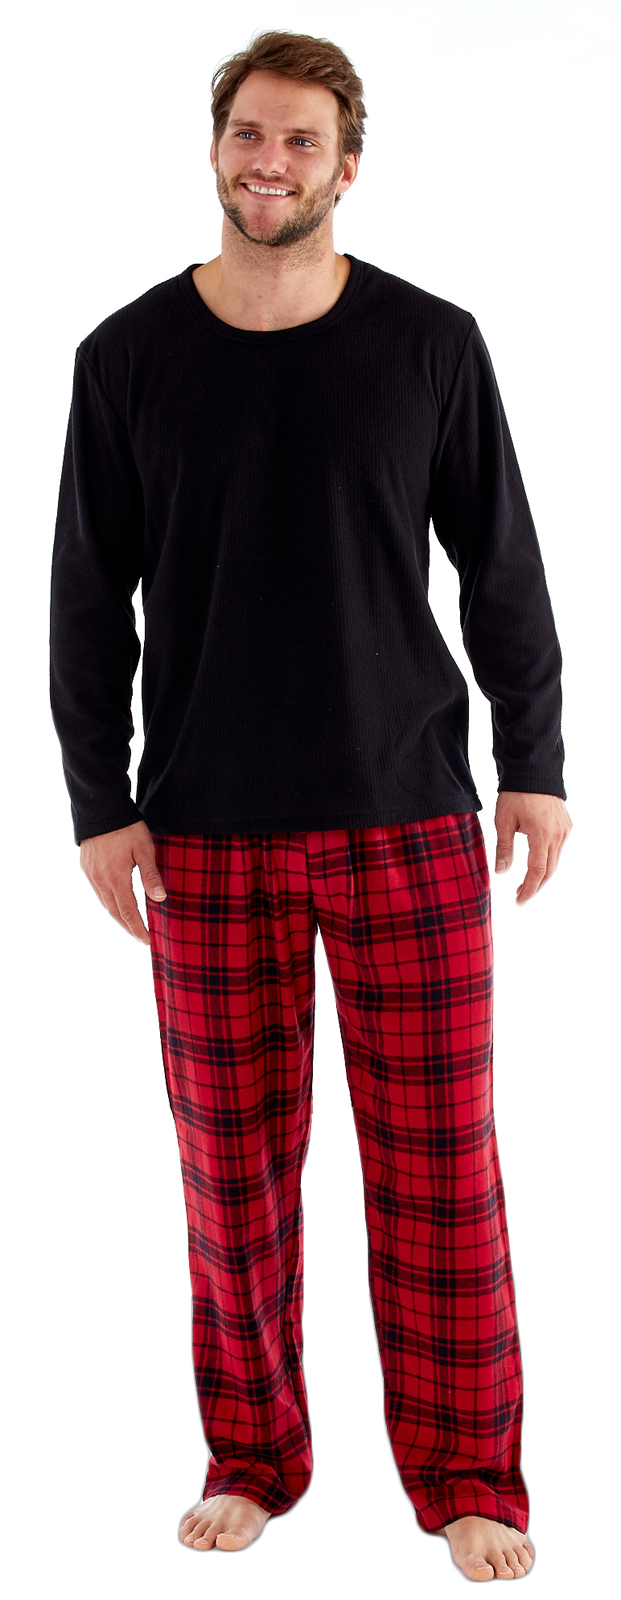 Find great deals on eBay for mens winter pajamas. Shop with confidence.